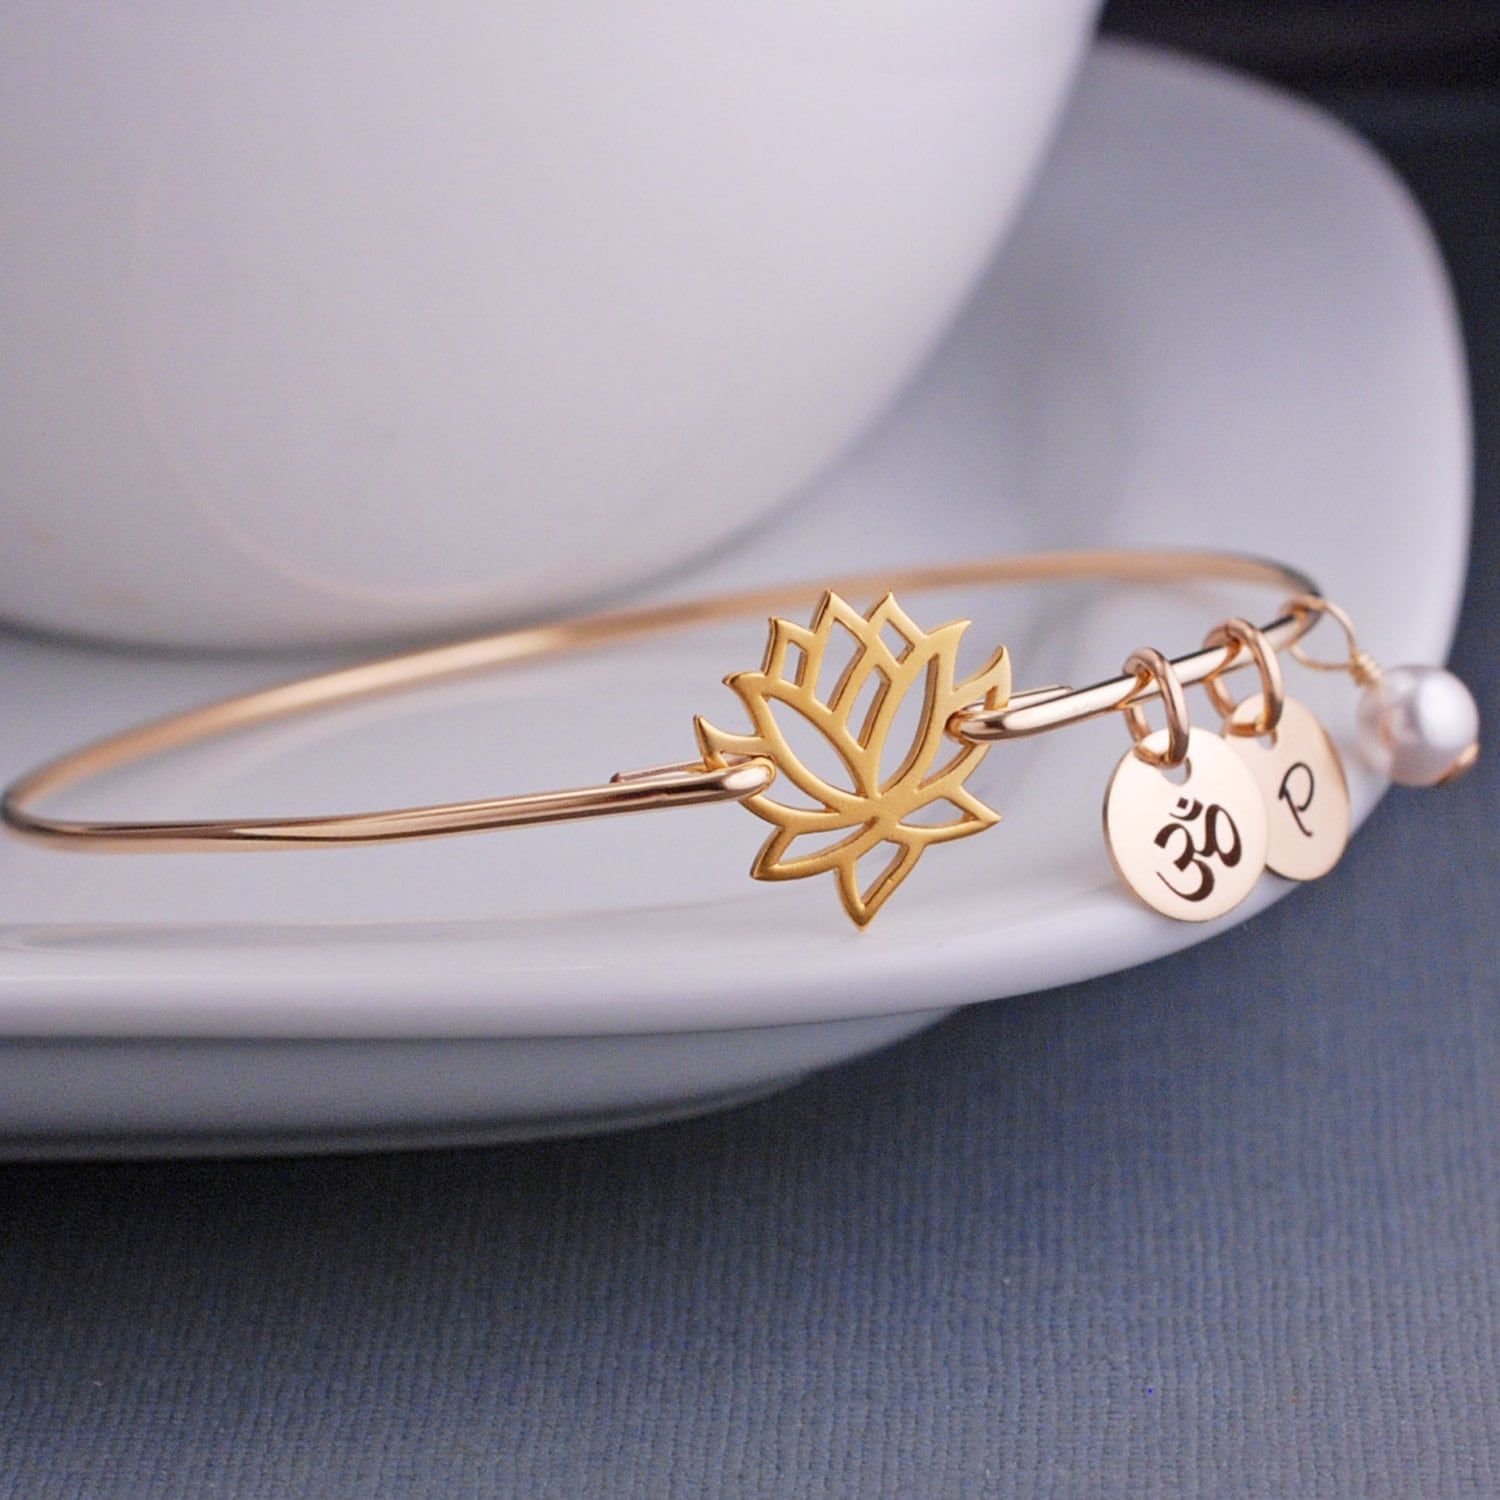 Yogi Gift Gold Lotus Jewelry Lotus Flower Bangle Bracelet